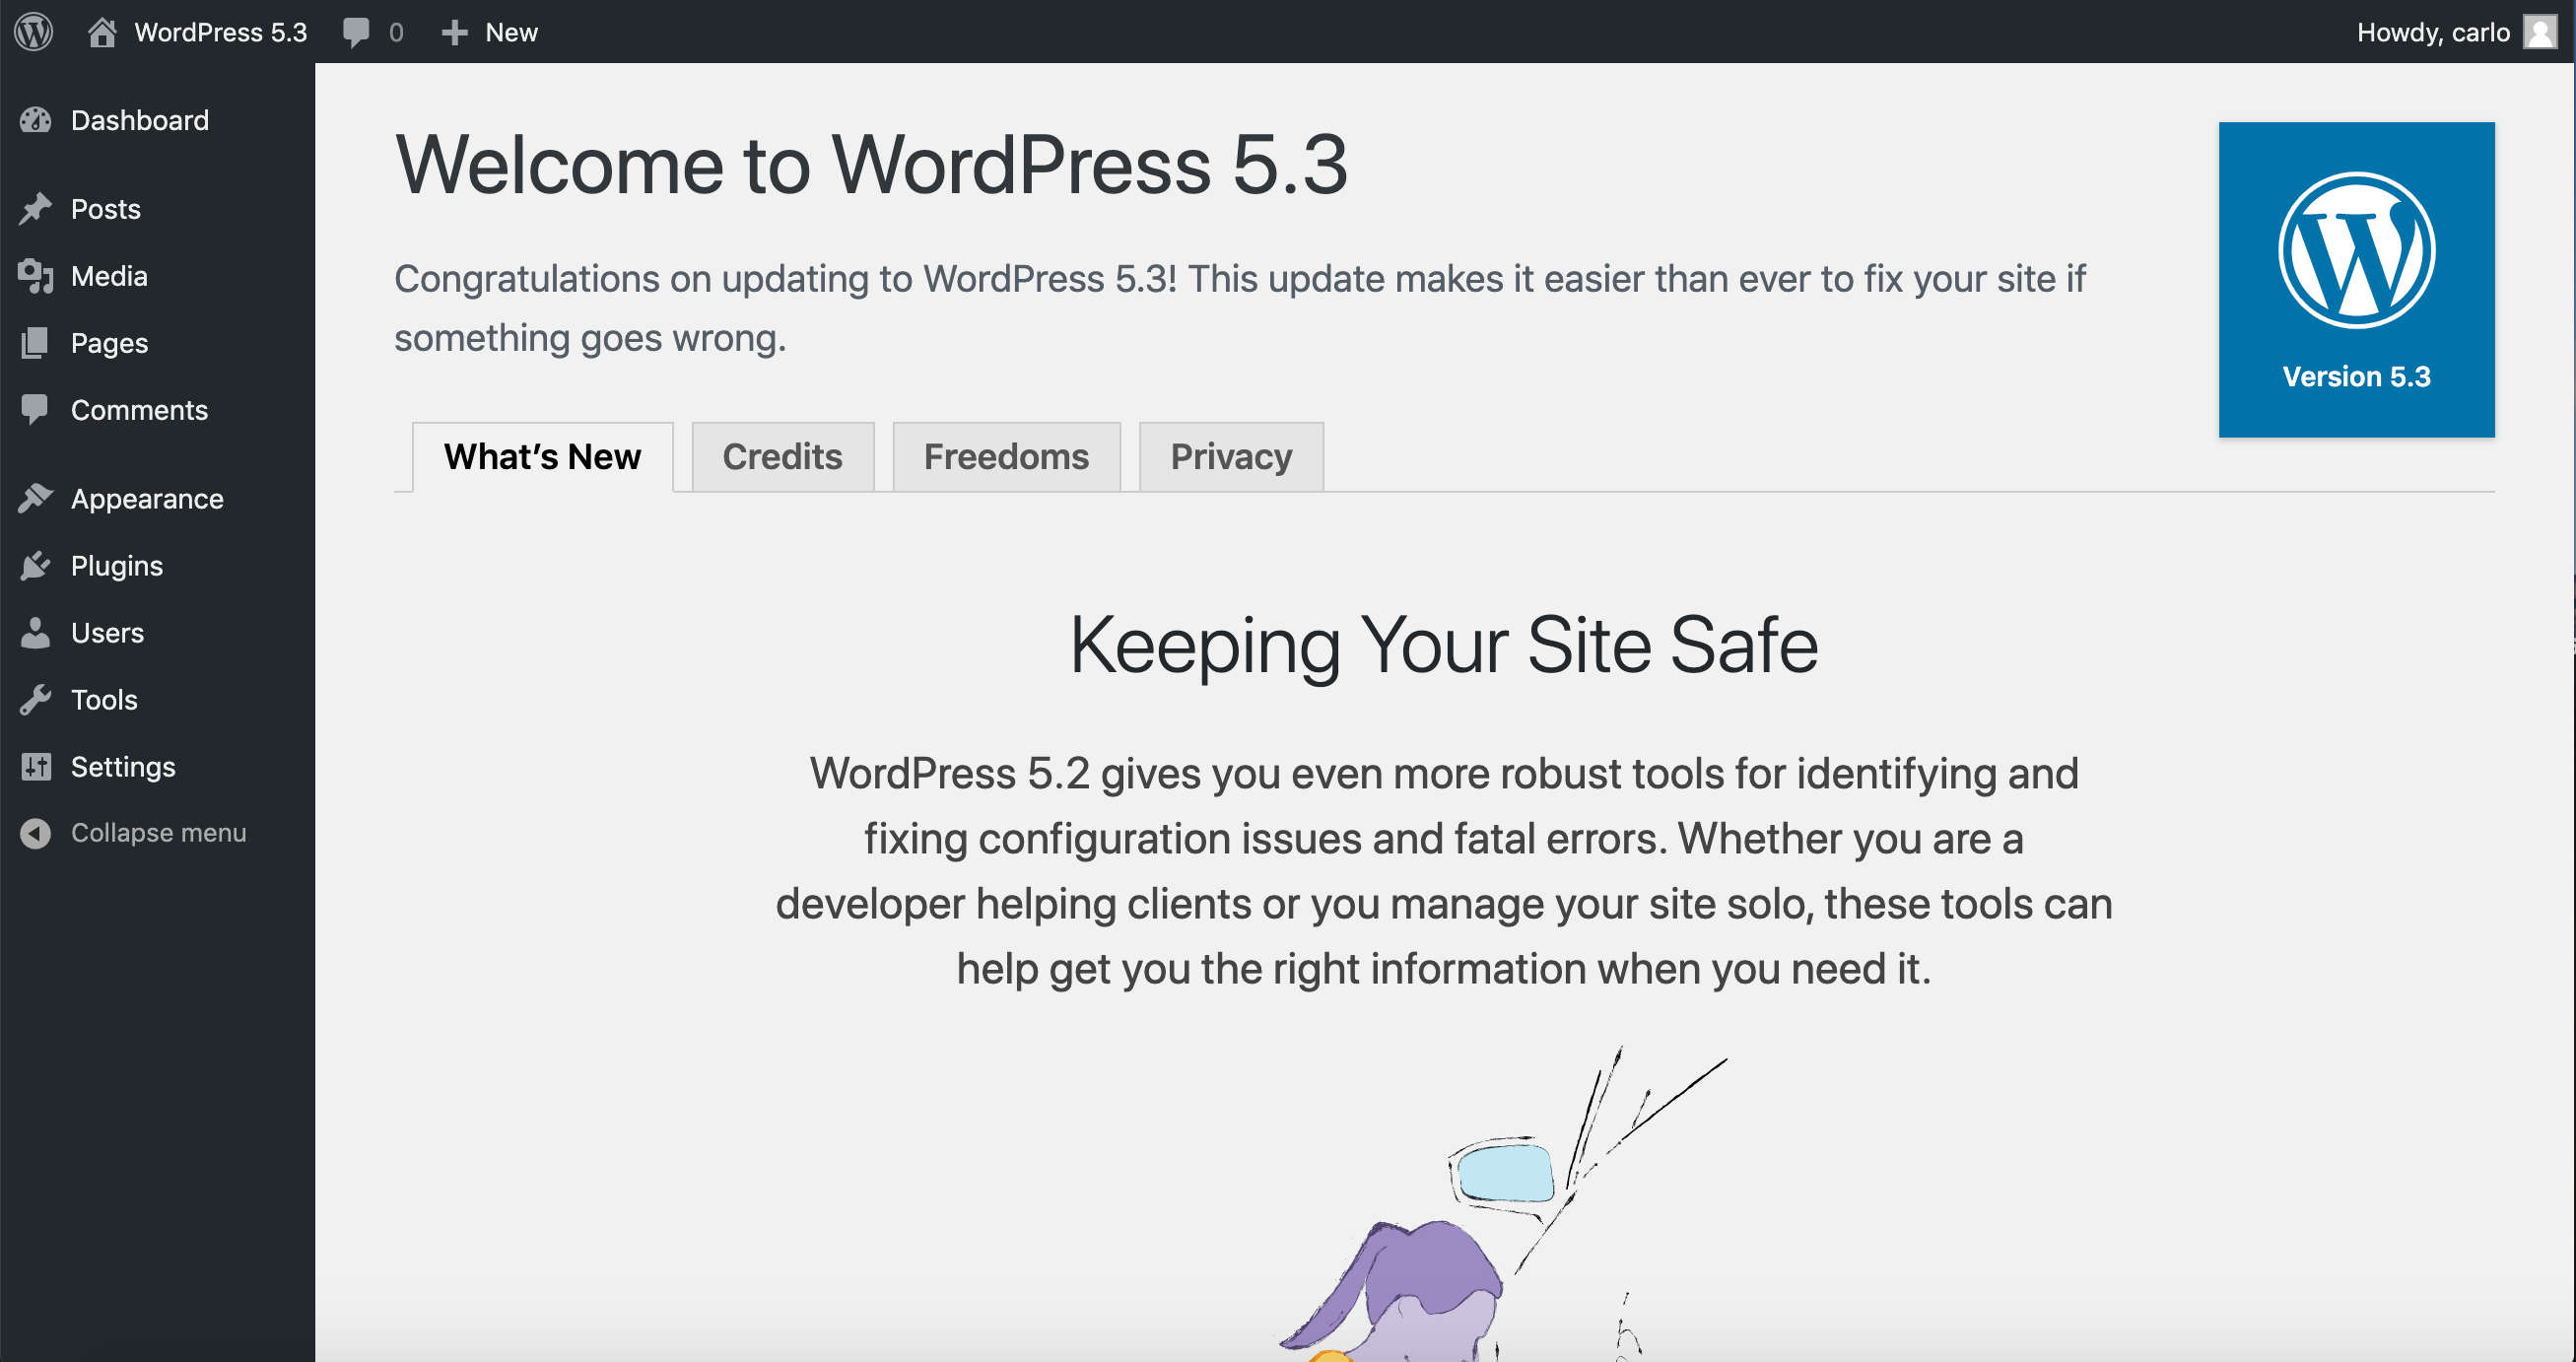 Temporary WordPress 5.3 About page